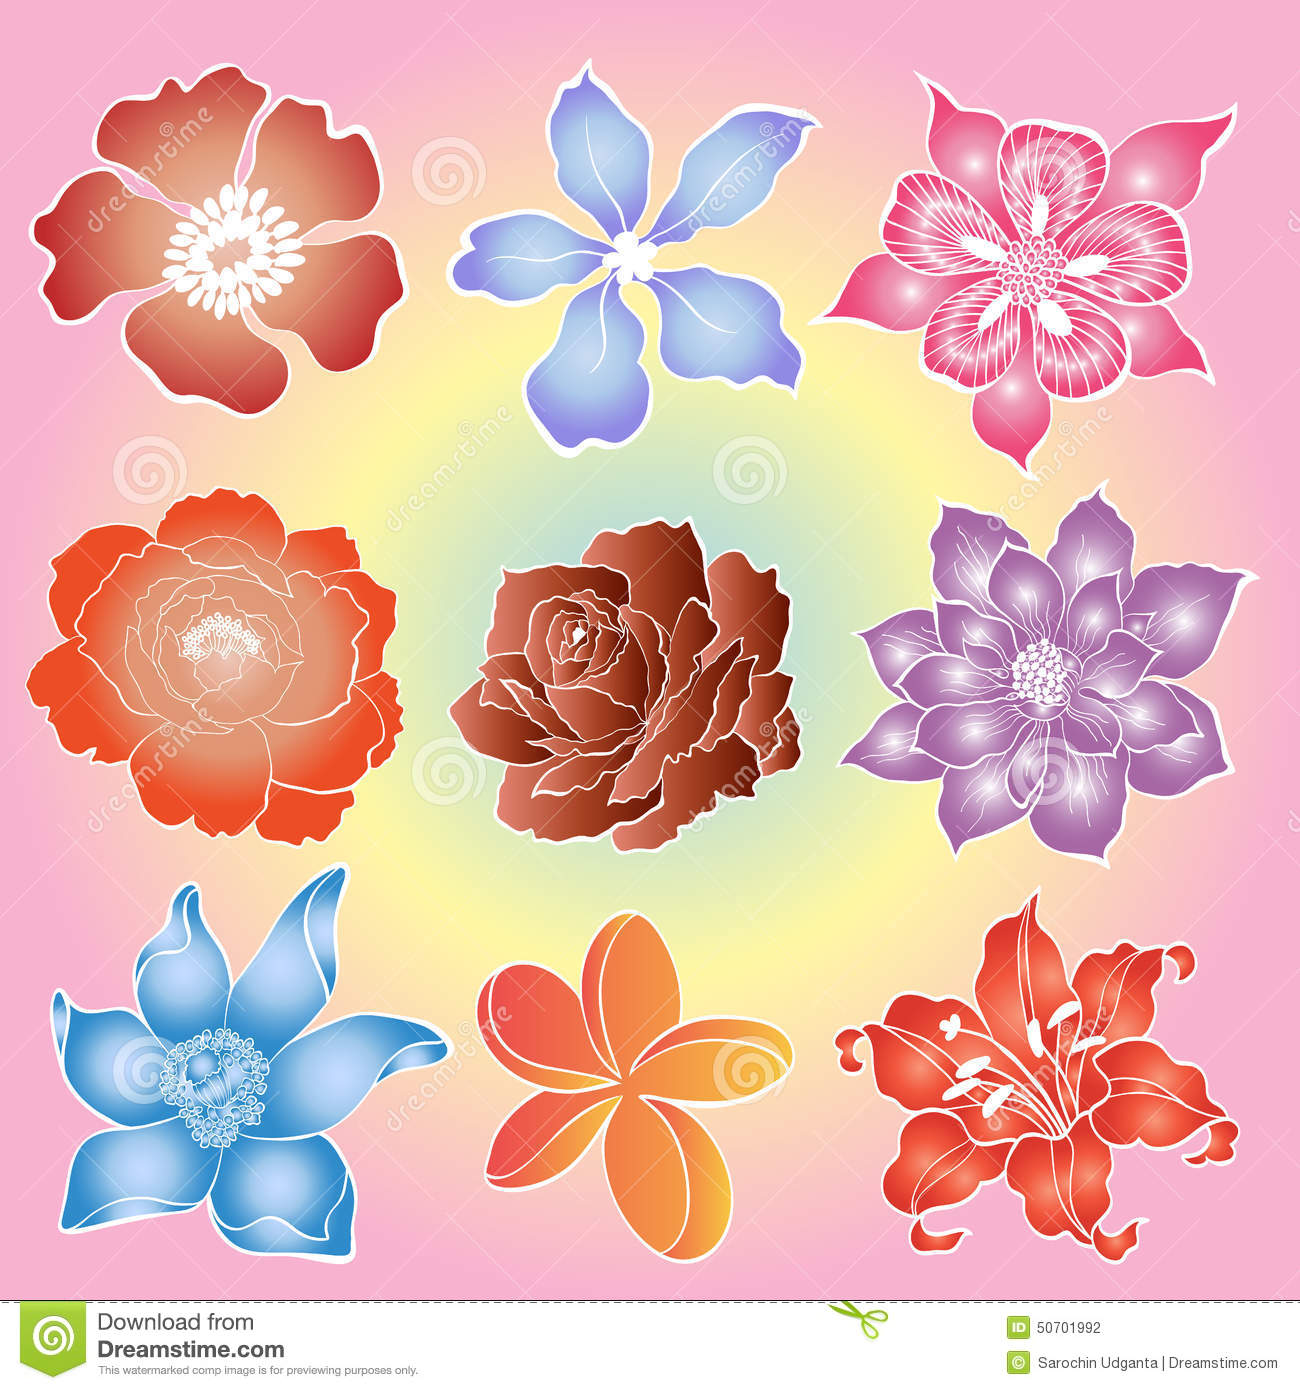 Batik Flowers Stock Vector. Illustration Of Hibiscus